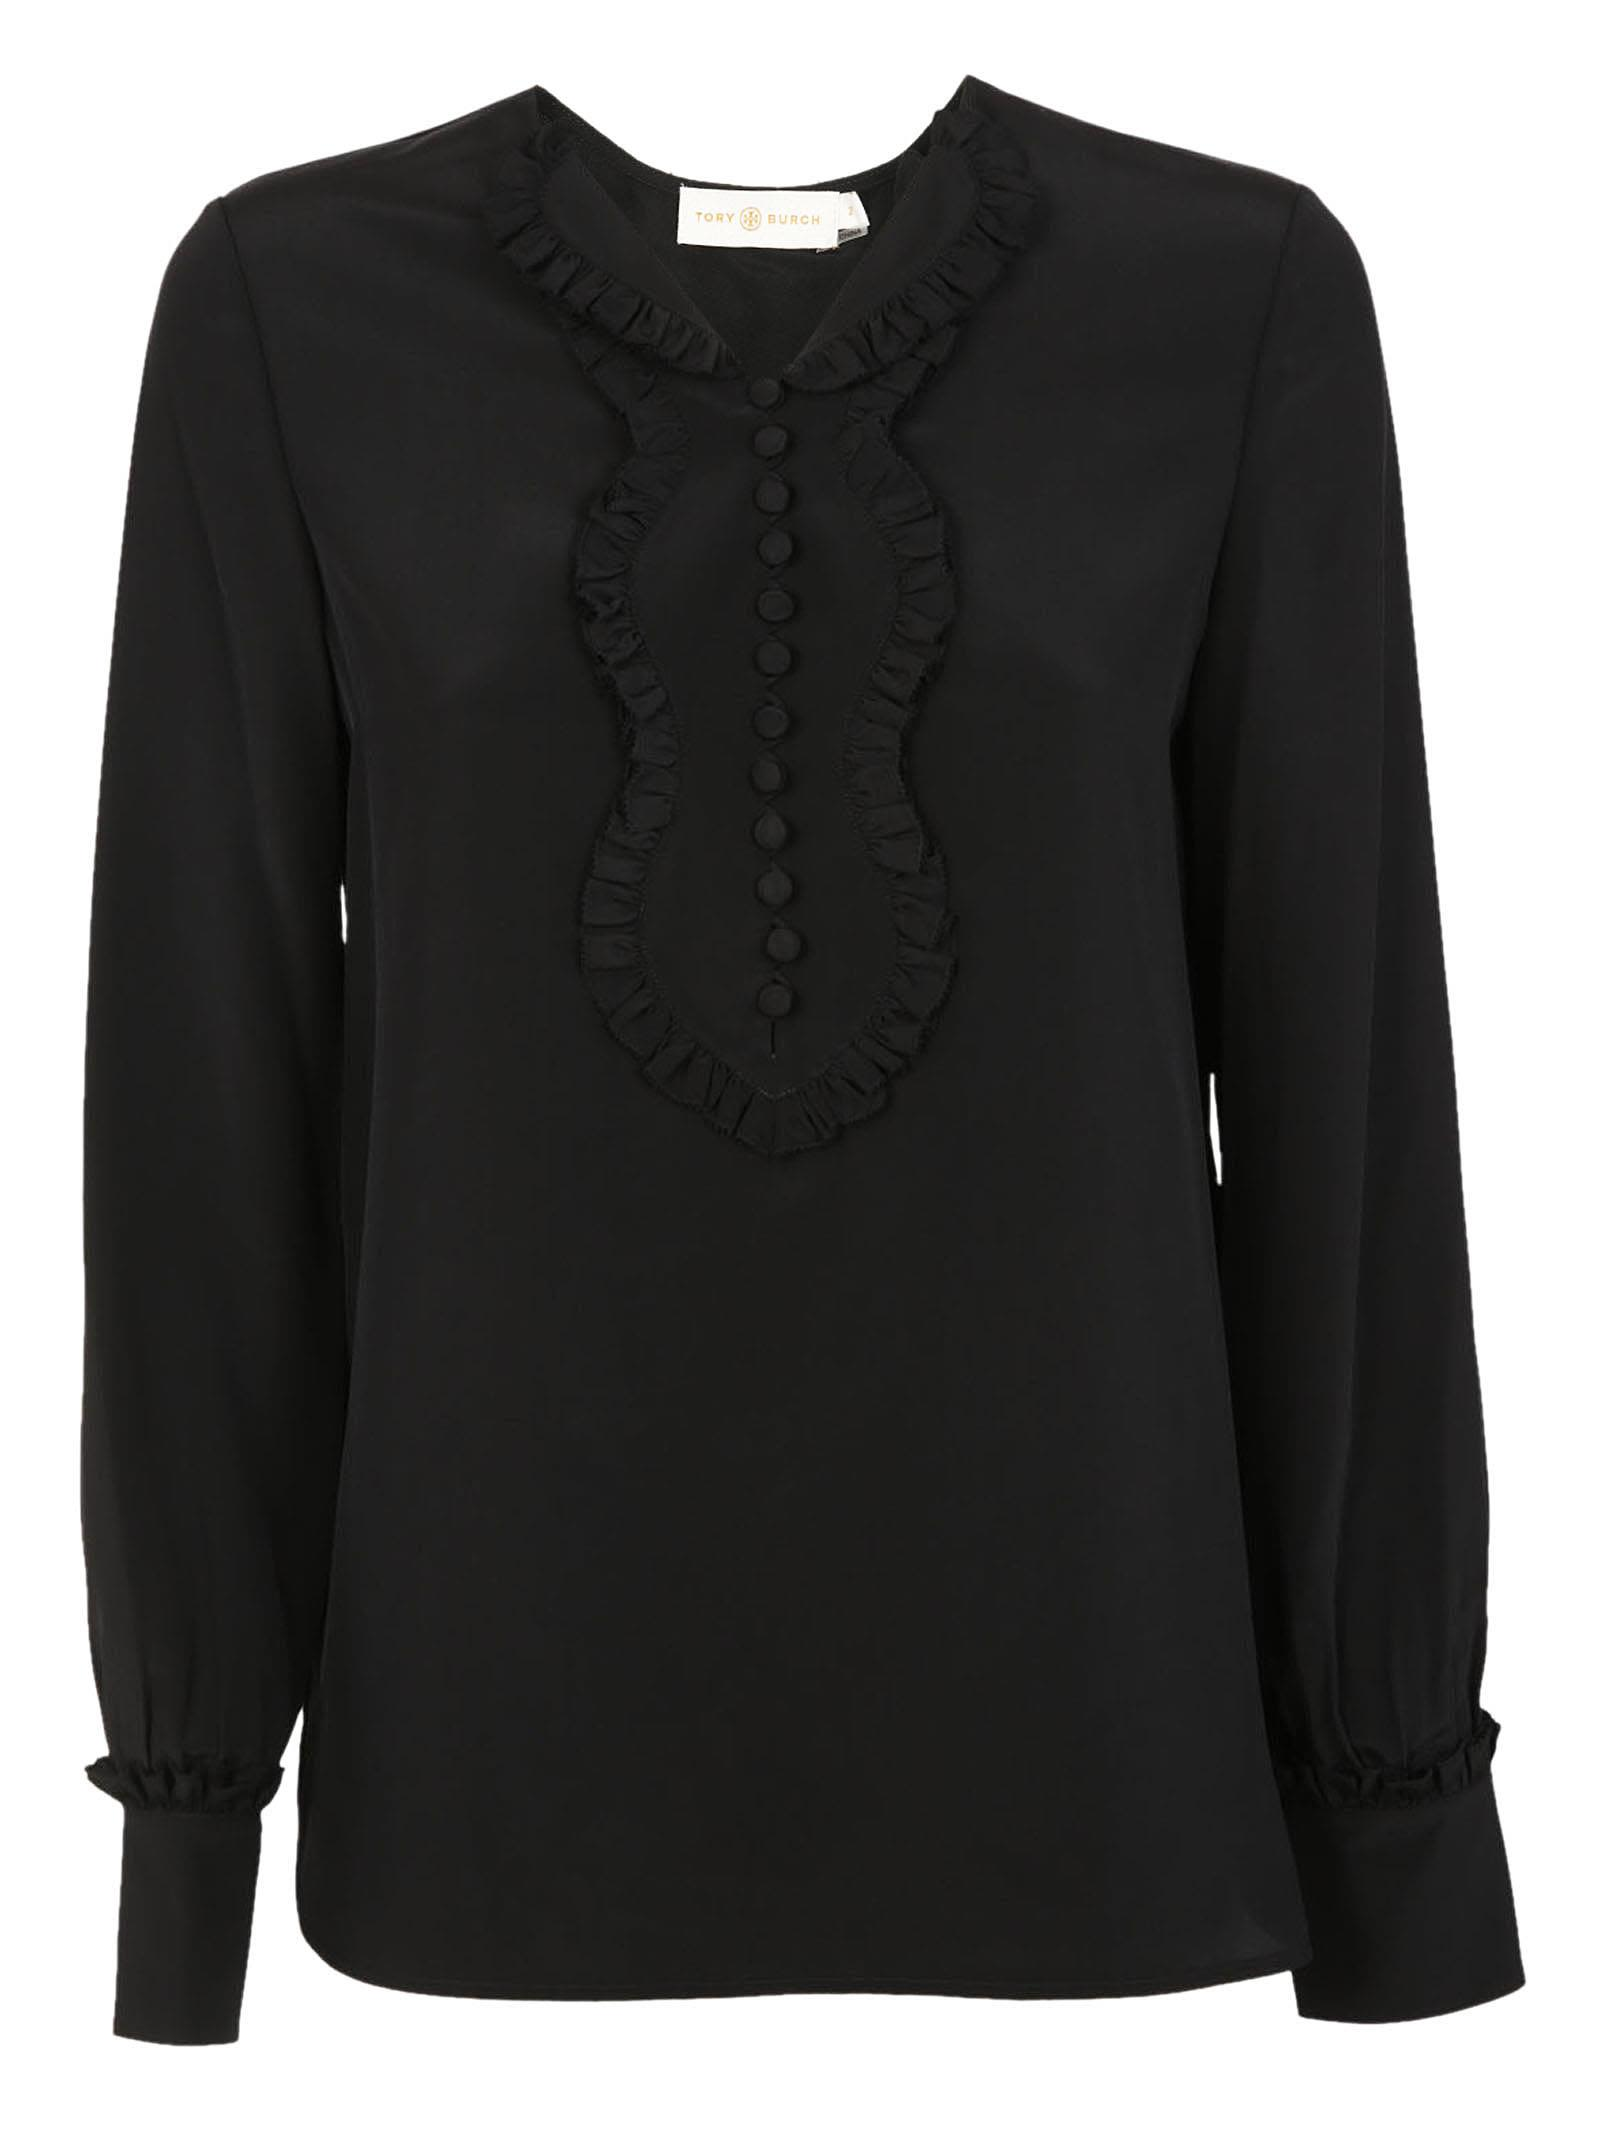 Tory Burch Frill Detailed Blouse